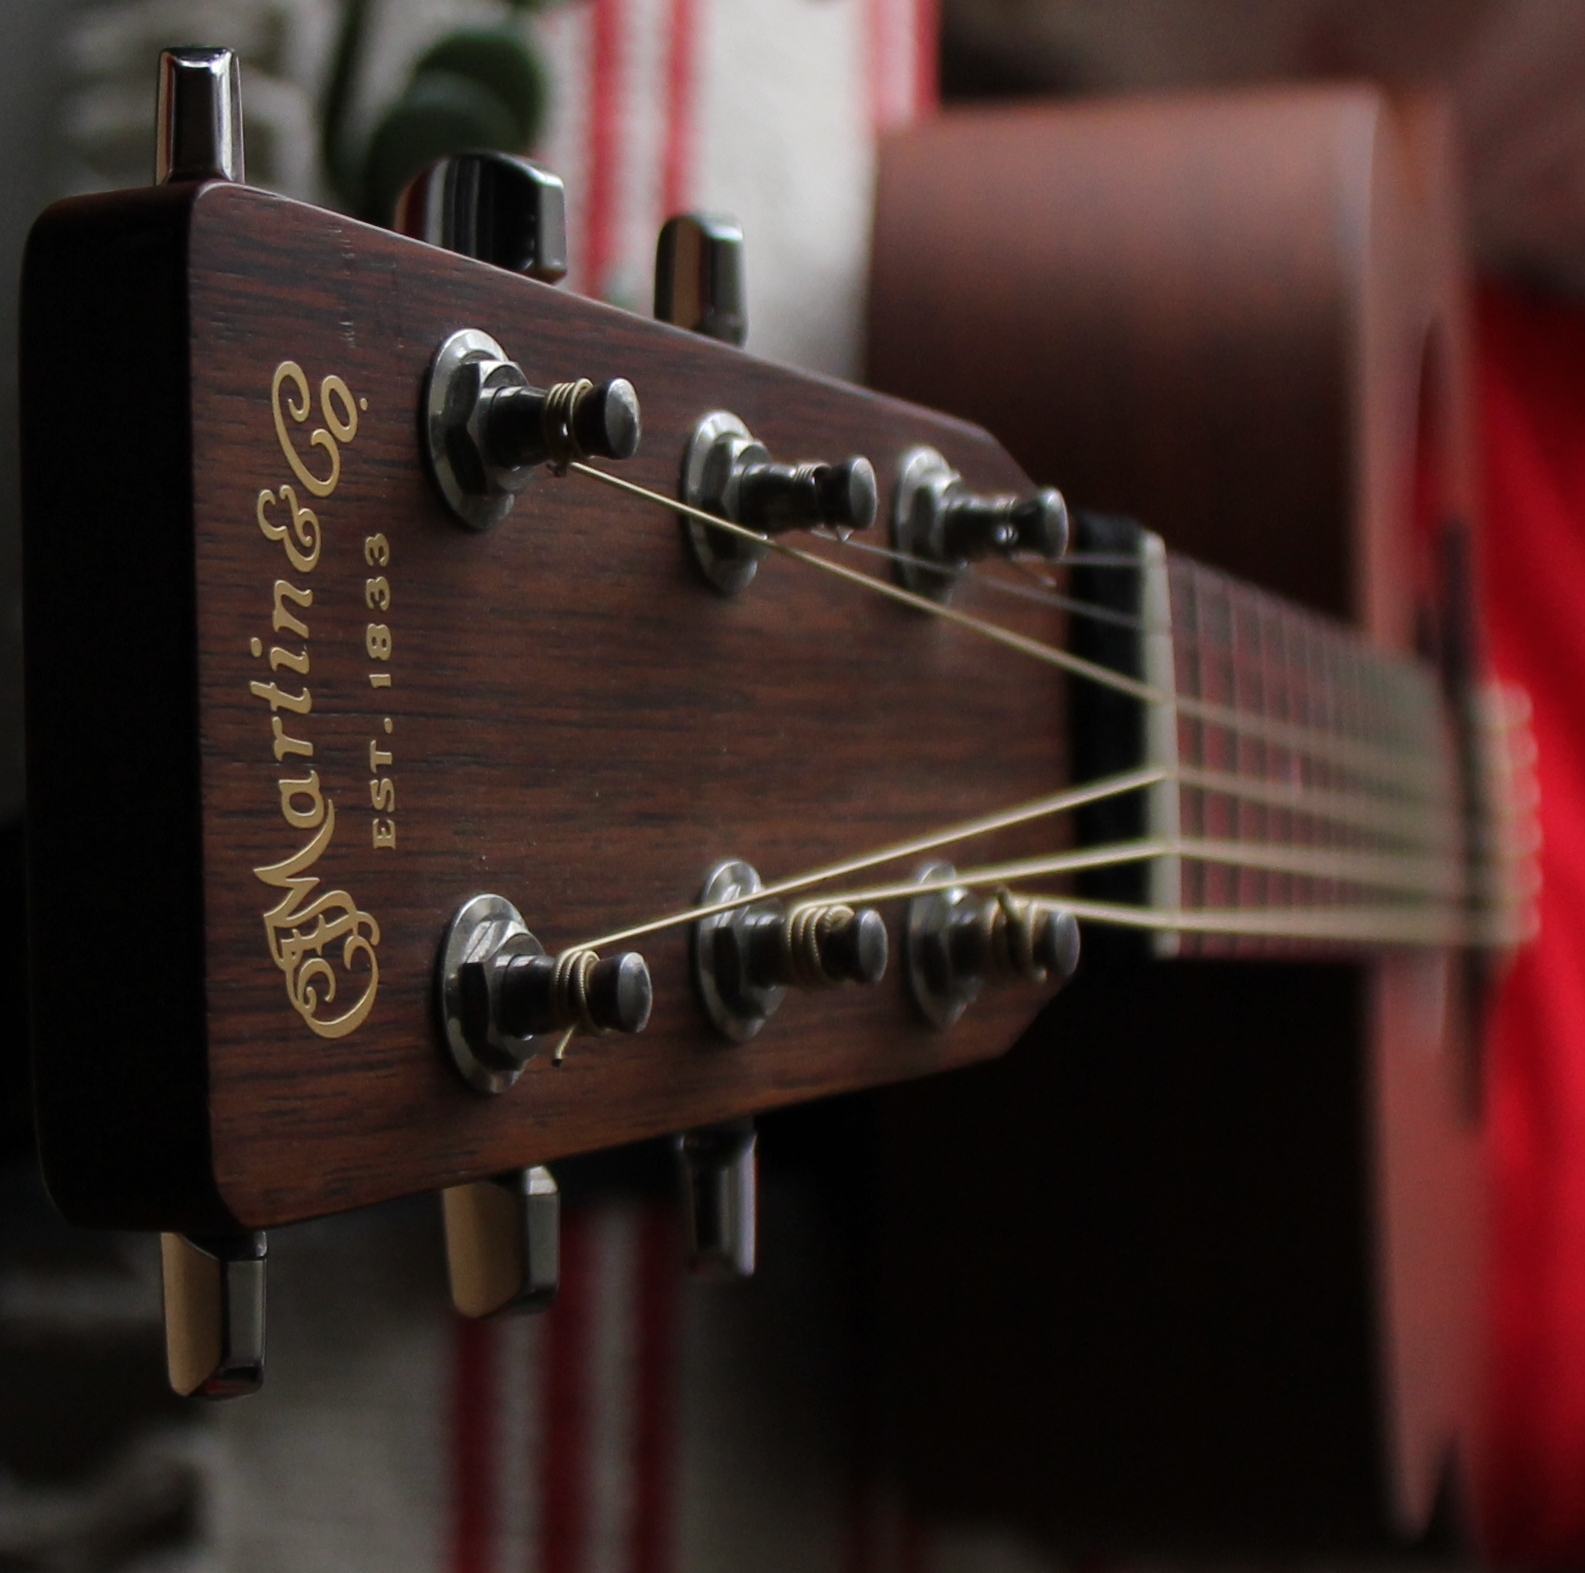 Martin Co D 15 Acoustic Guitar User Review Gearslutz